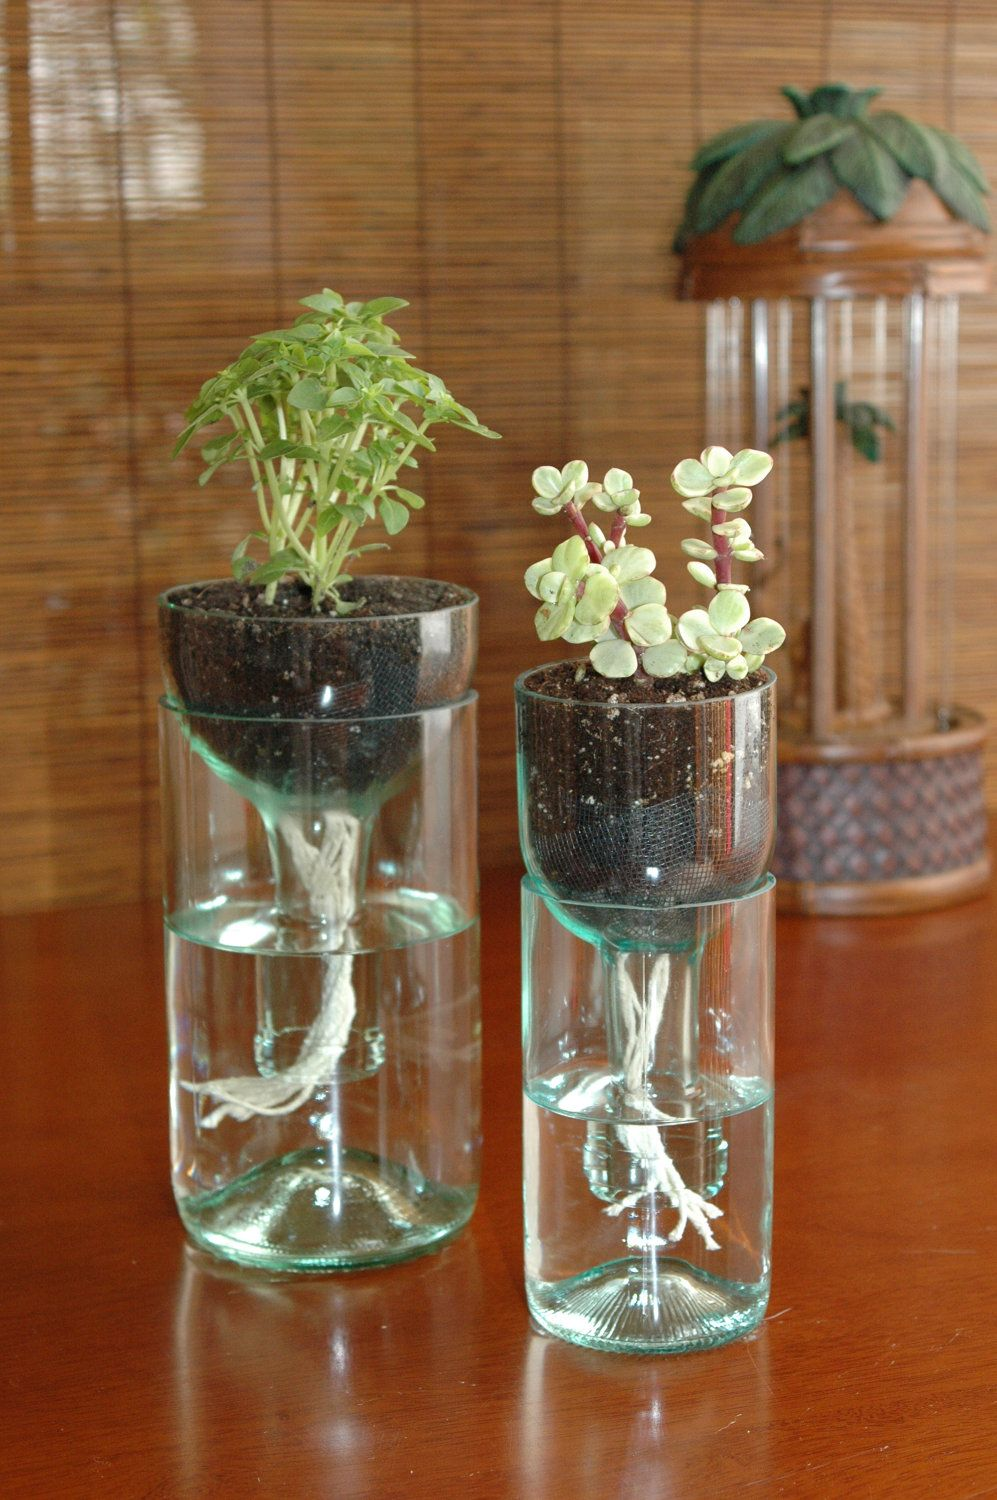 self watering planter made from recycled wine bottle. @Cindy DuPaul